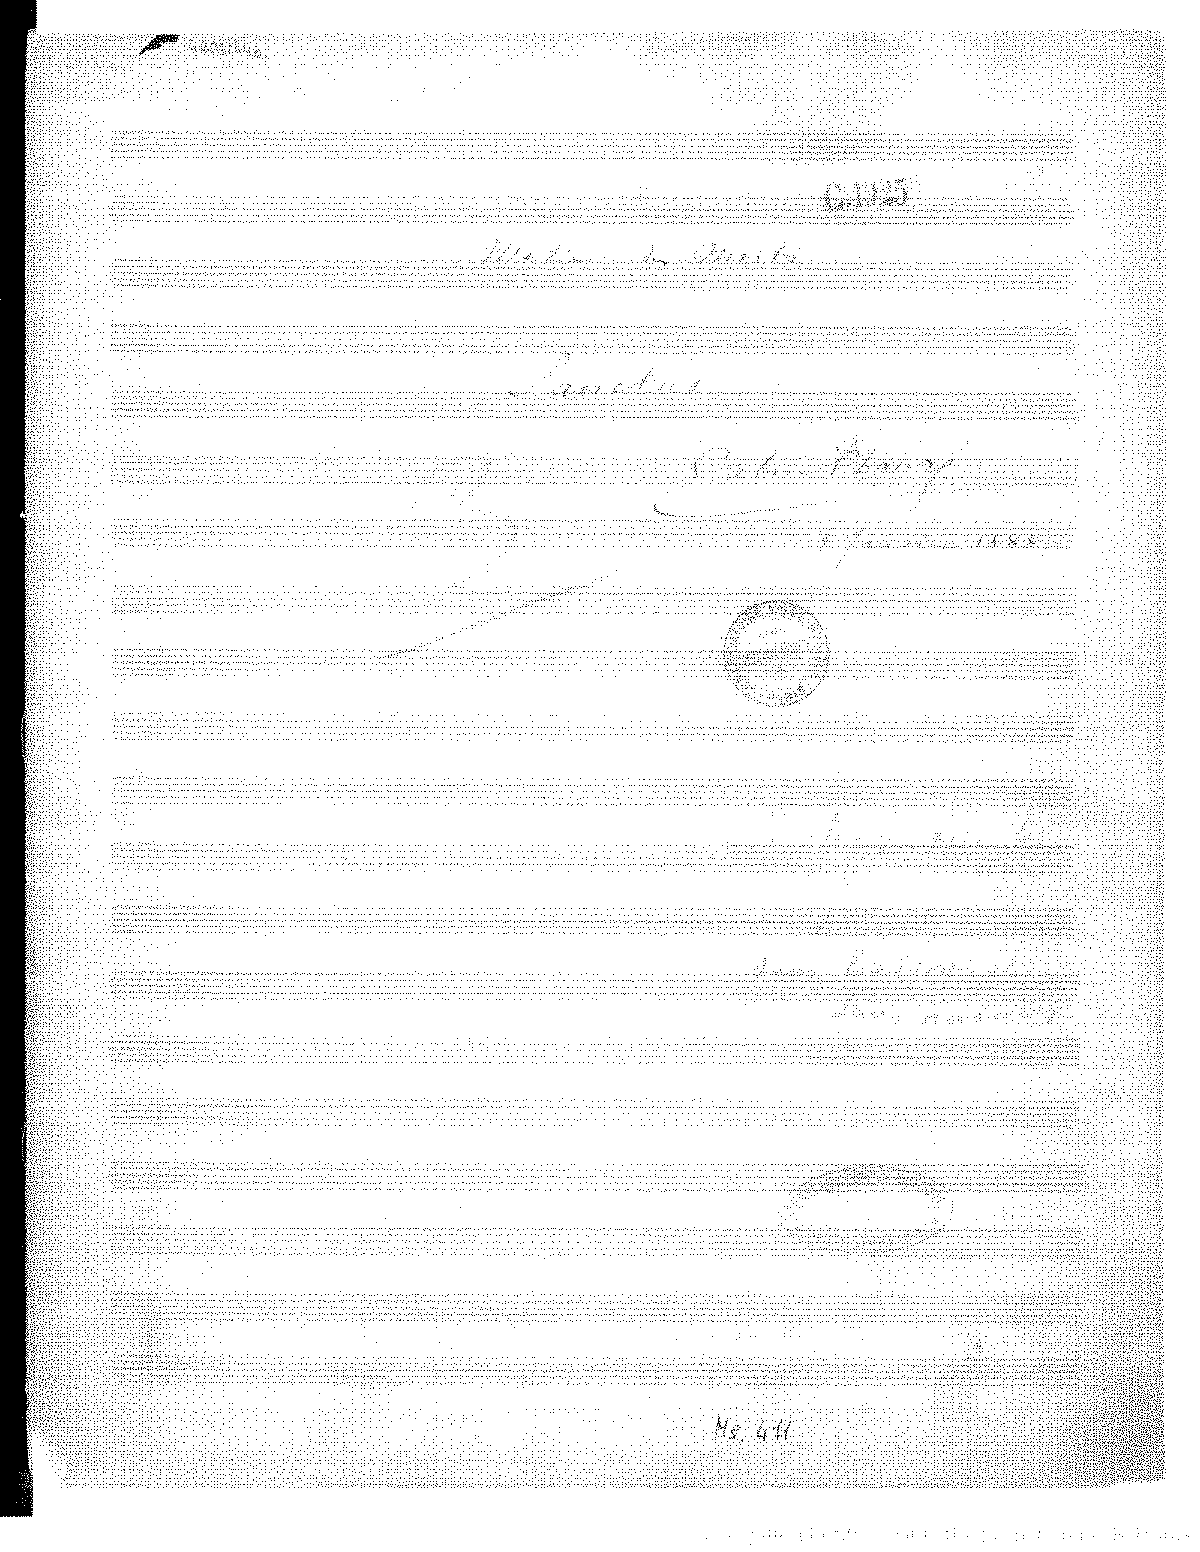 PMLP21398-Fauré - Requiem - Sanctus ms.pdf